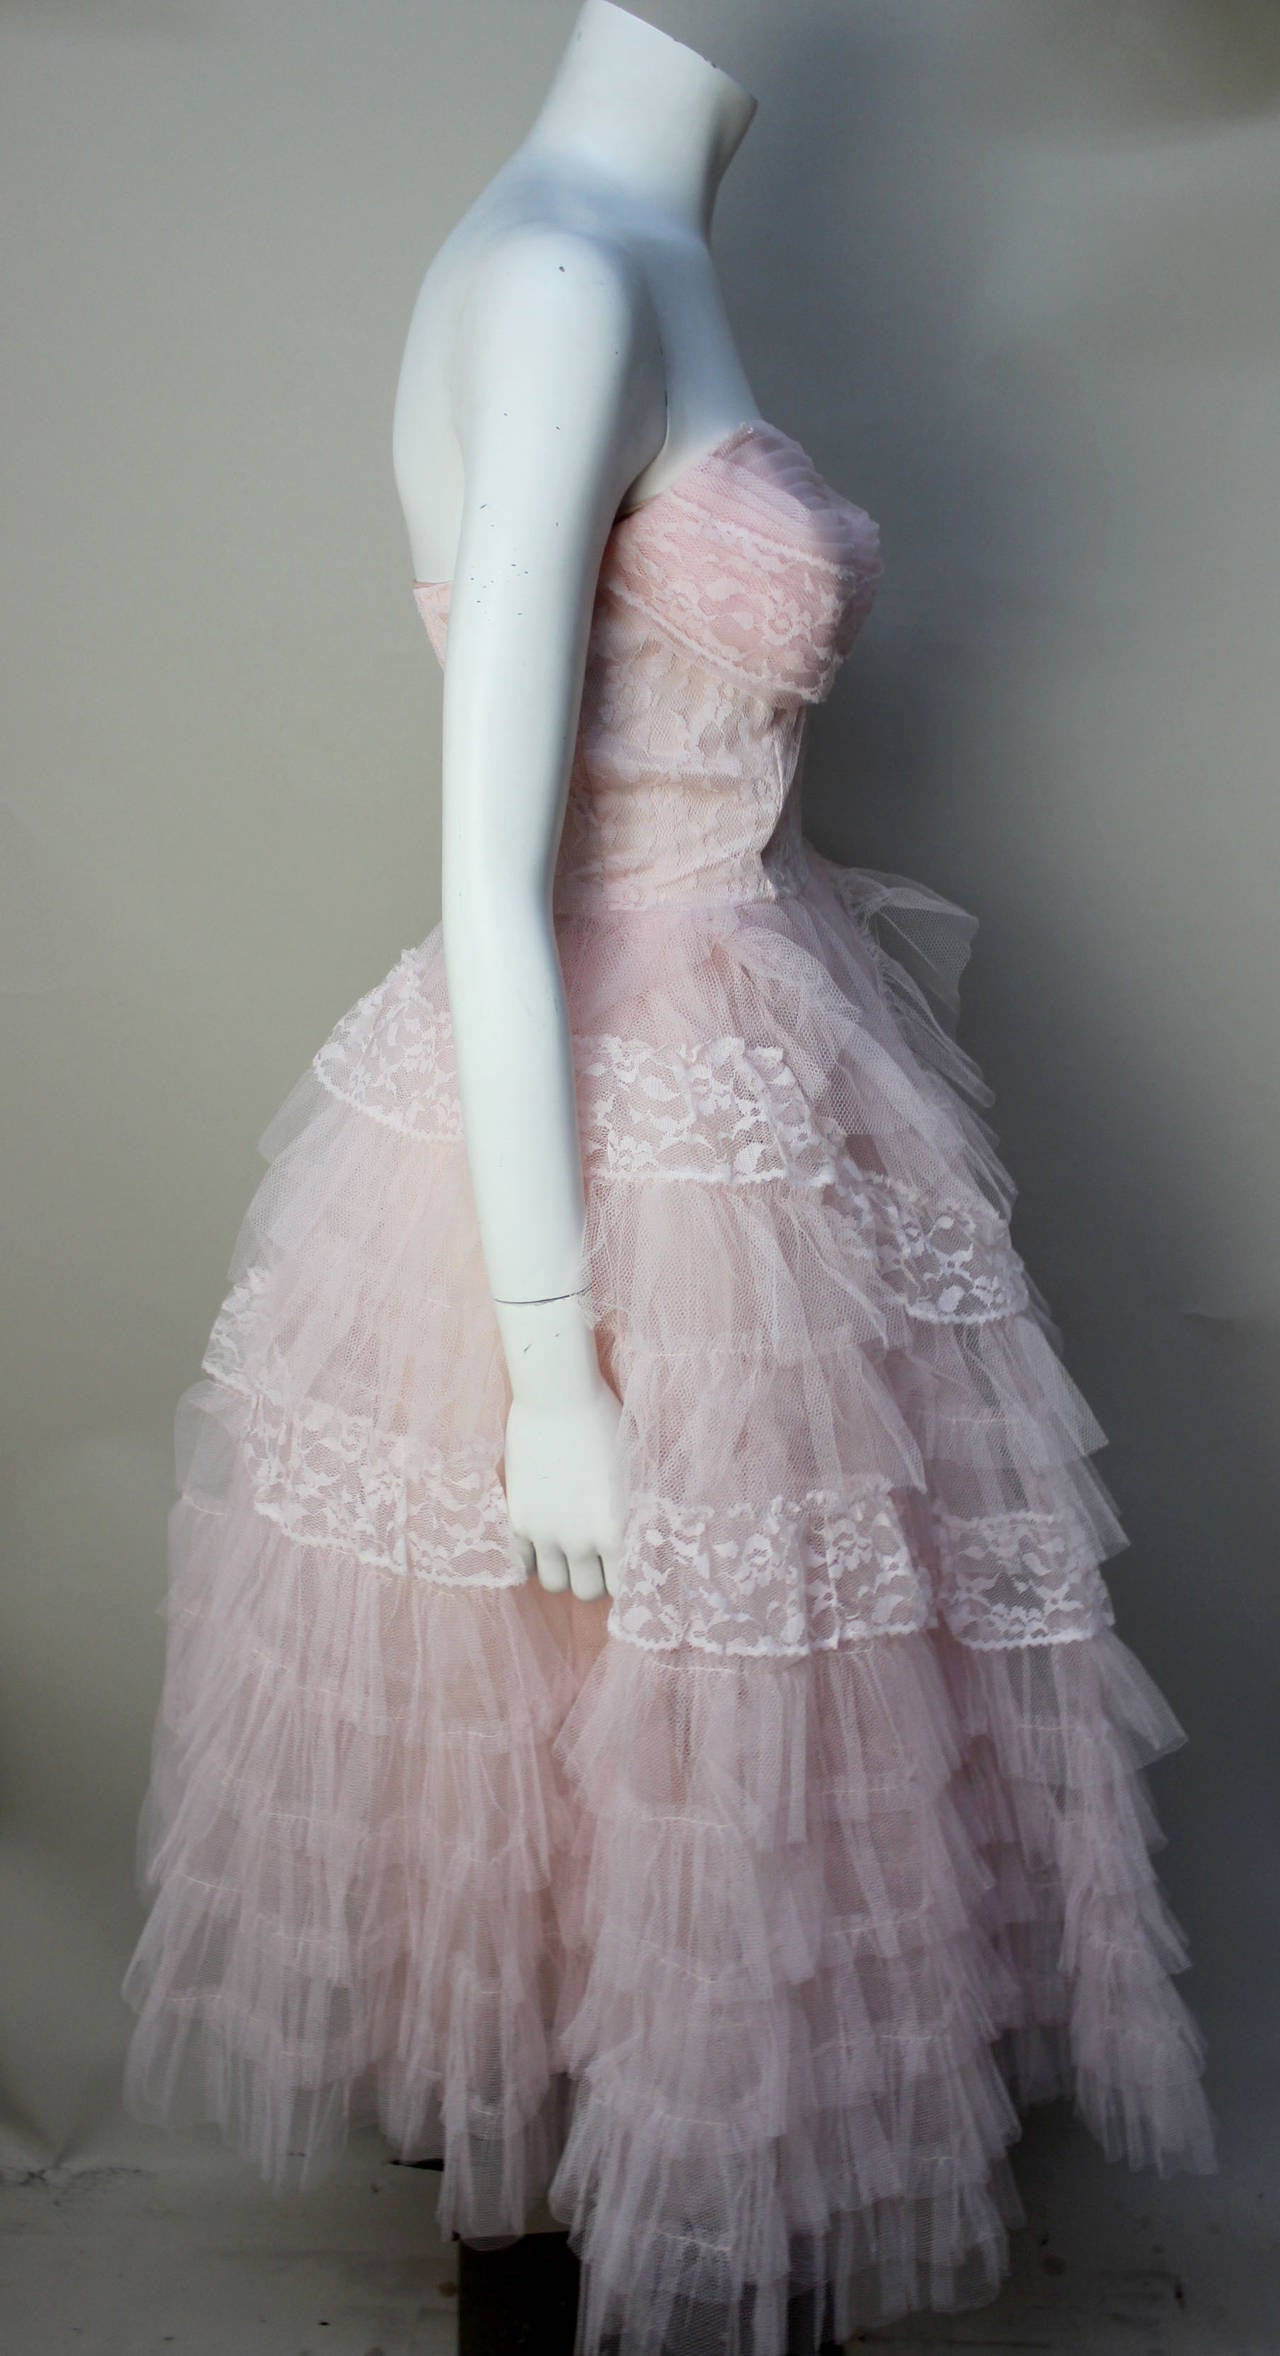 Stunning Never Worn 1950s Pink Tulle Evening Dress with Lace Bolero In Good Condition For Sale In New York, NY